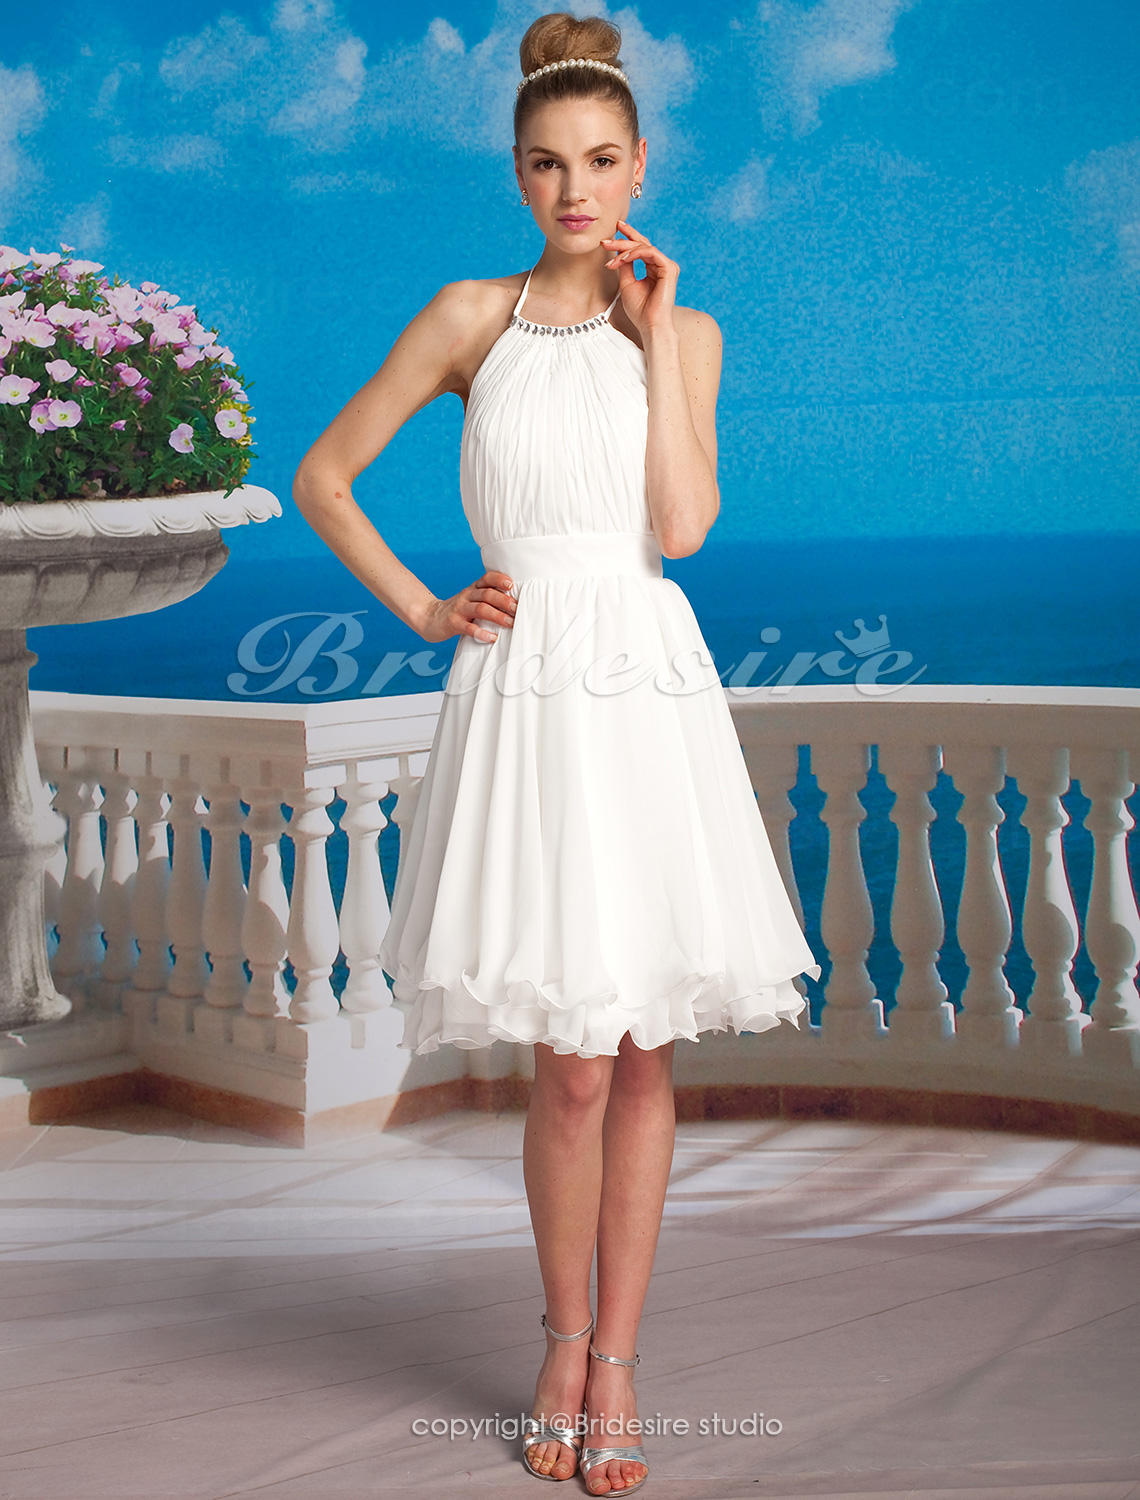 A-line Chiffon Knee-length Halter Wedding Dress